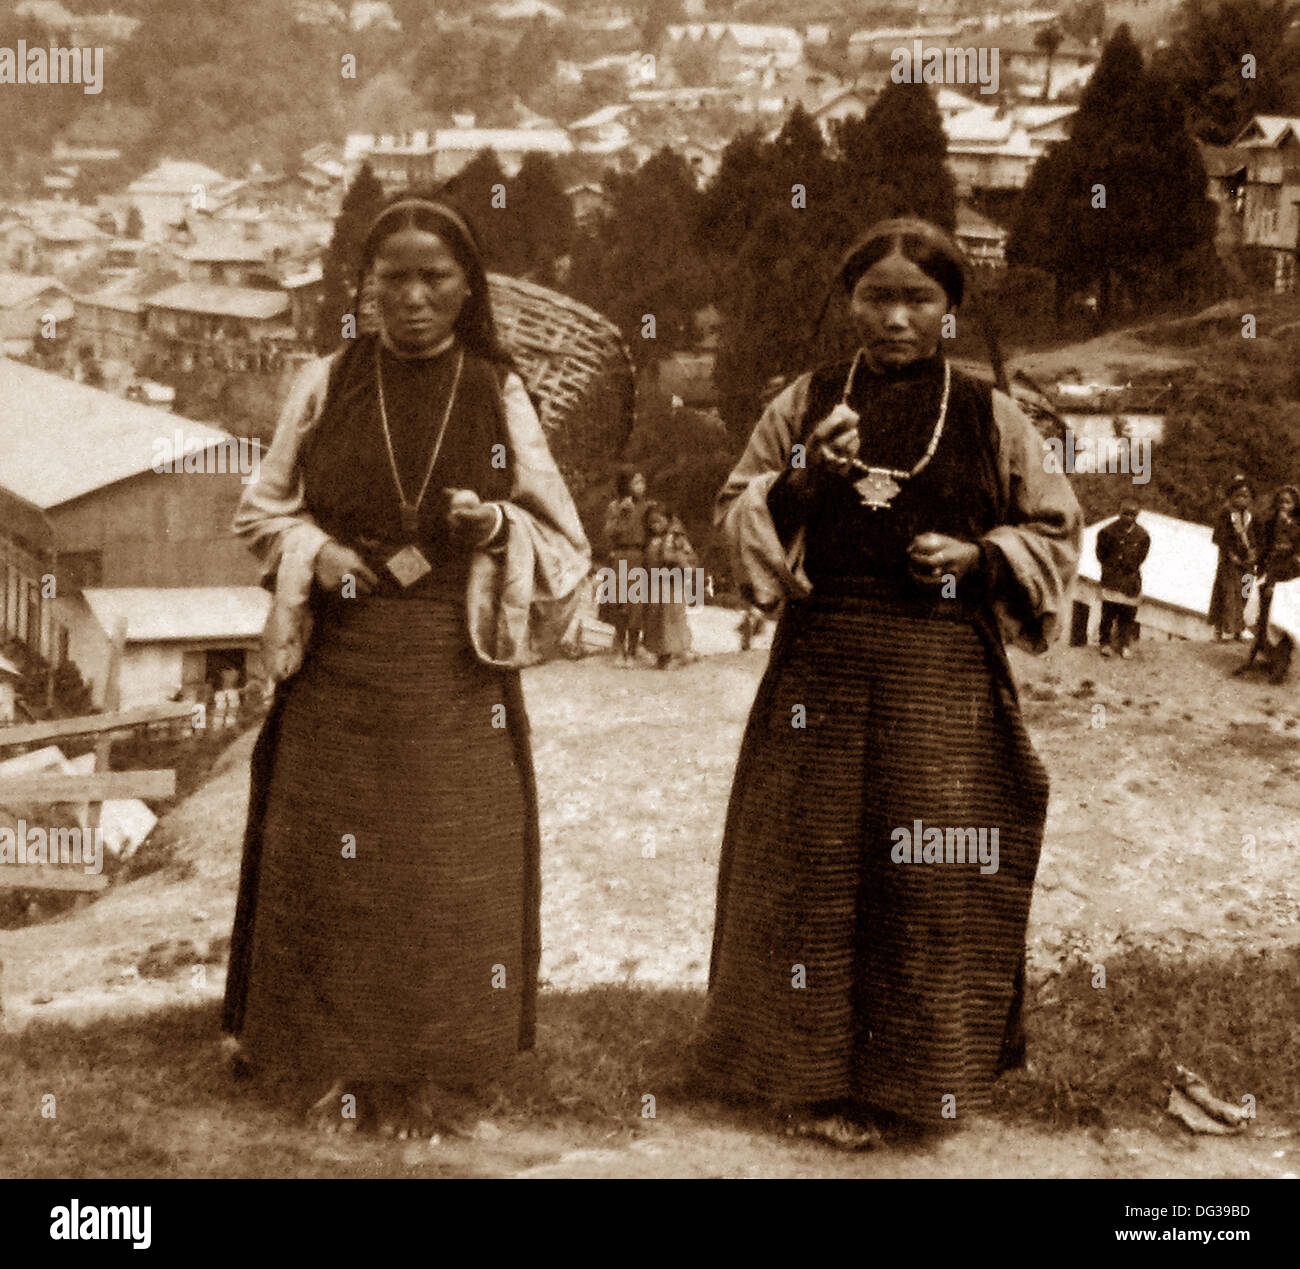 India - Darjeeling - Nepalese porters early 1900s - Stock Image